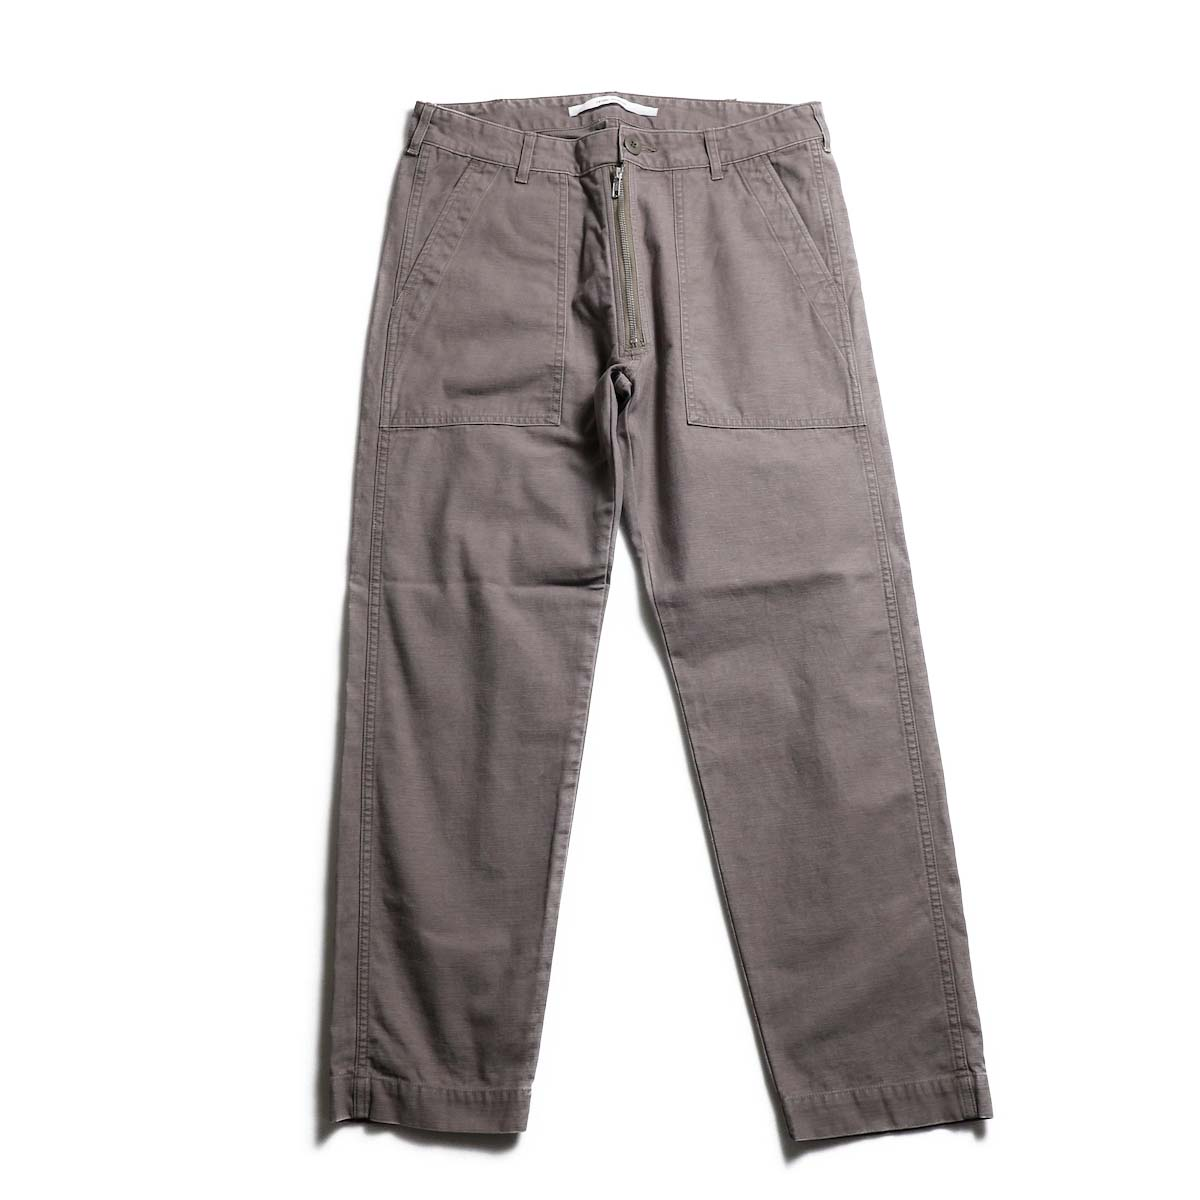 FUTURE PRIMITIVE / FP FZ Baker Pants -GRAY